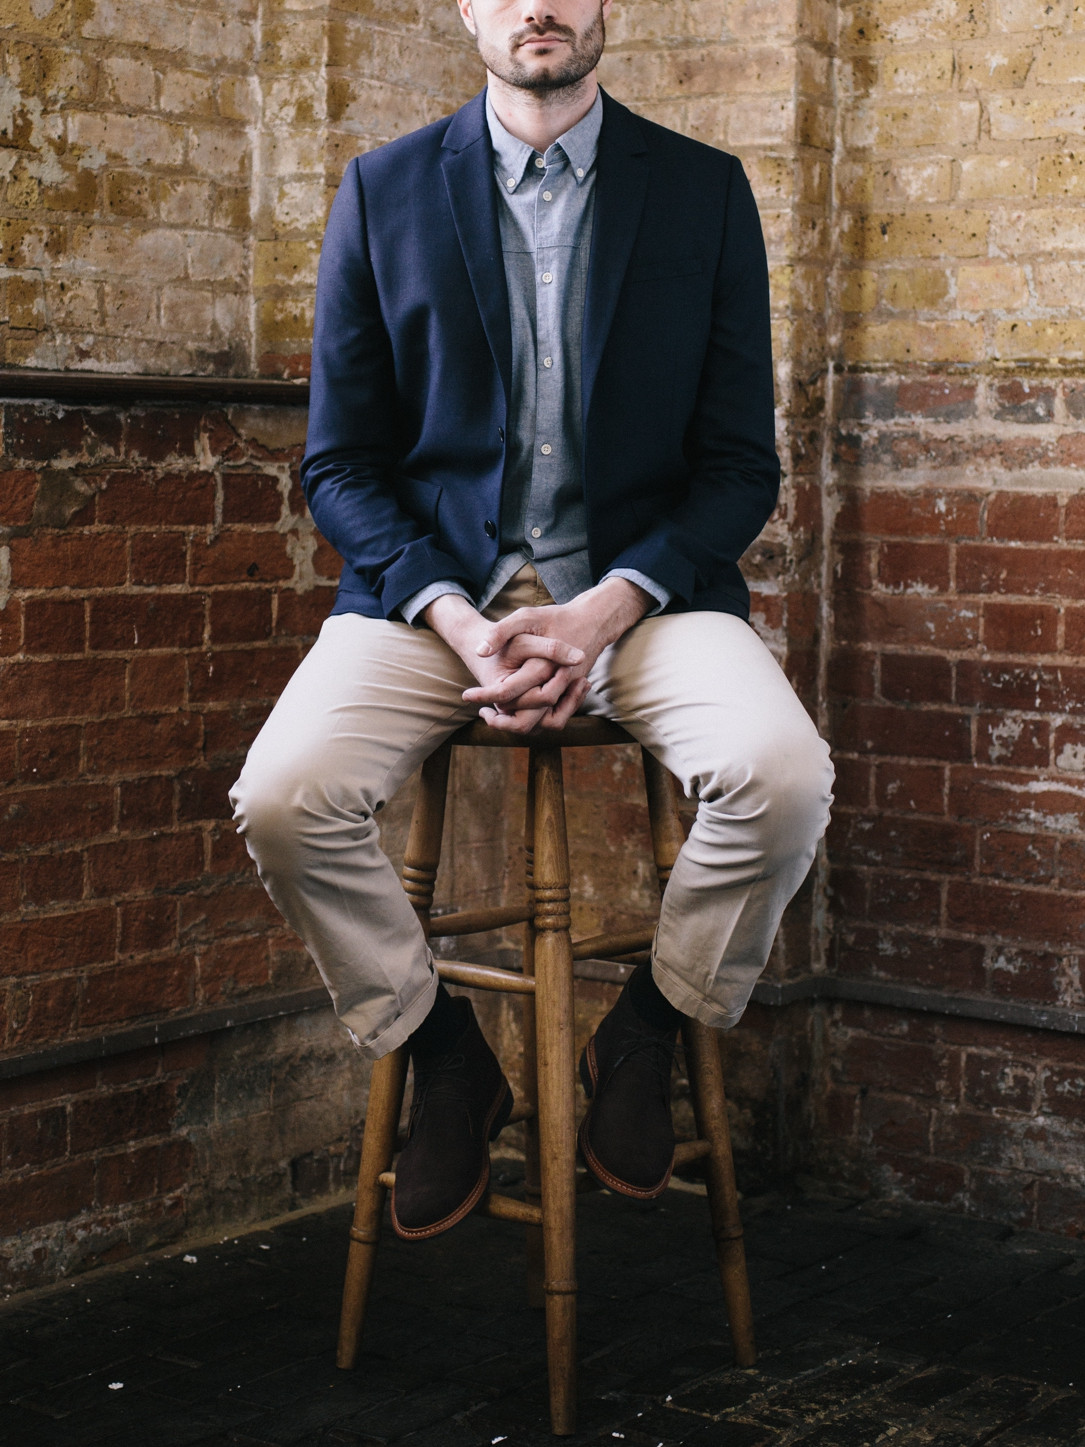 Men's outfit idea for 2021 with navy blazer, blue casual shirt, stone chinos, brown desert boots. Suitable for spring and fall.